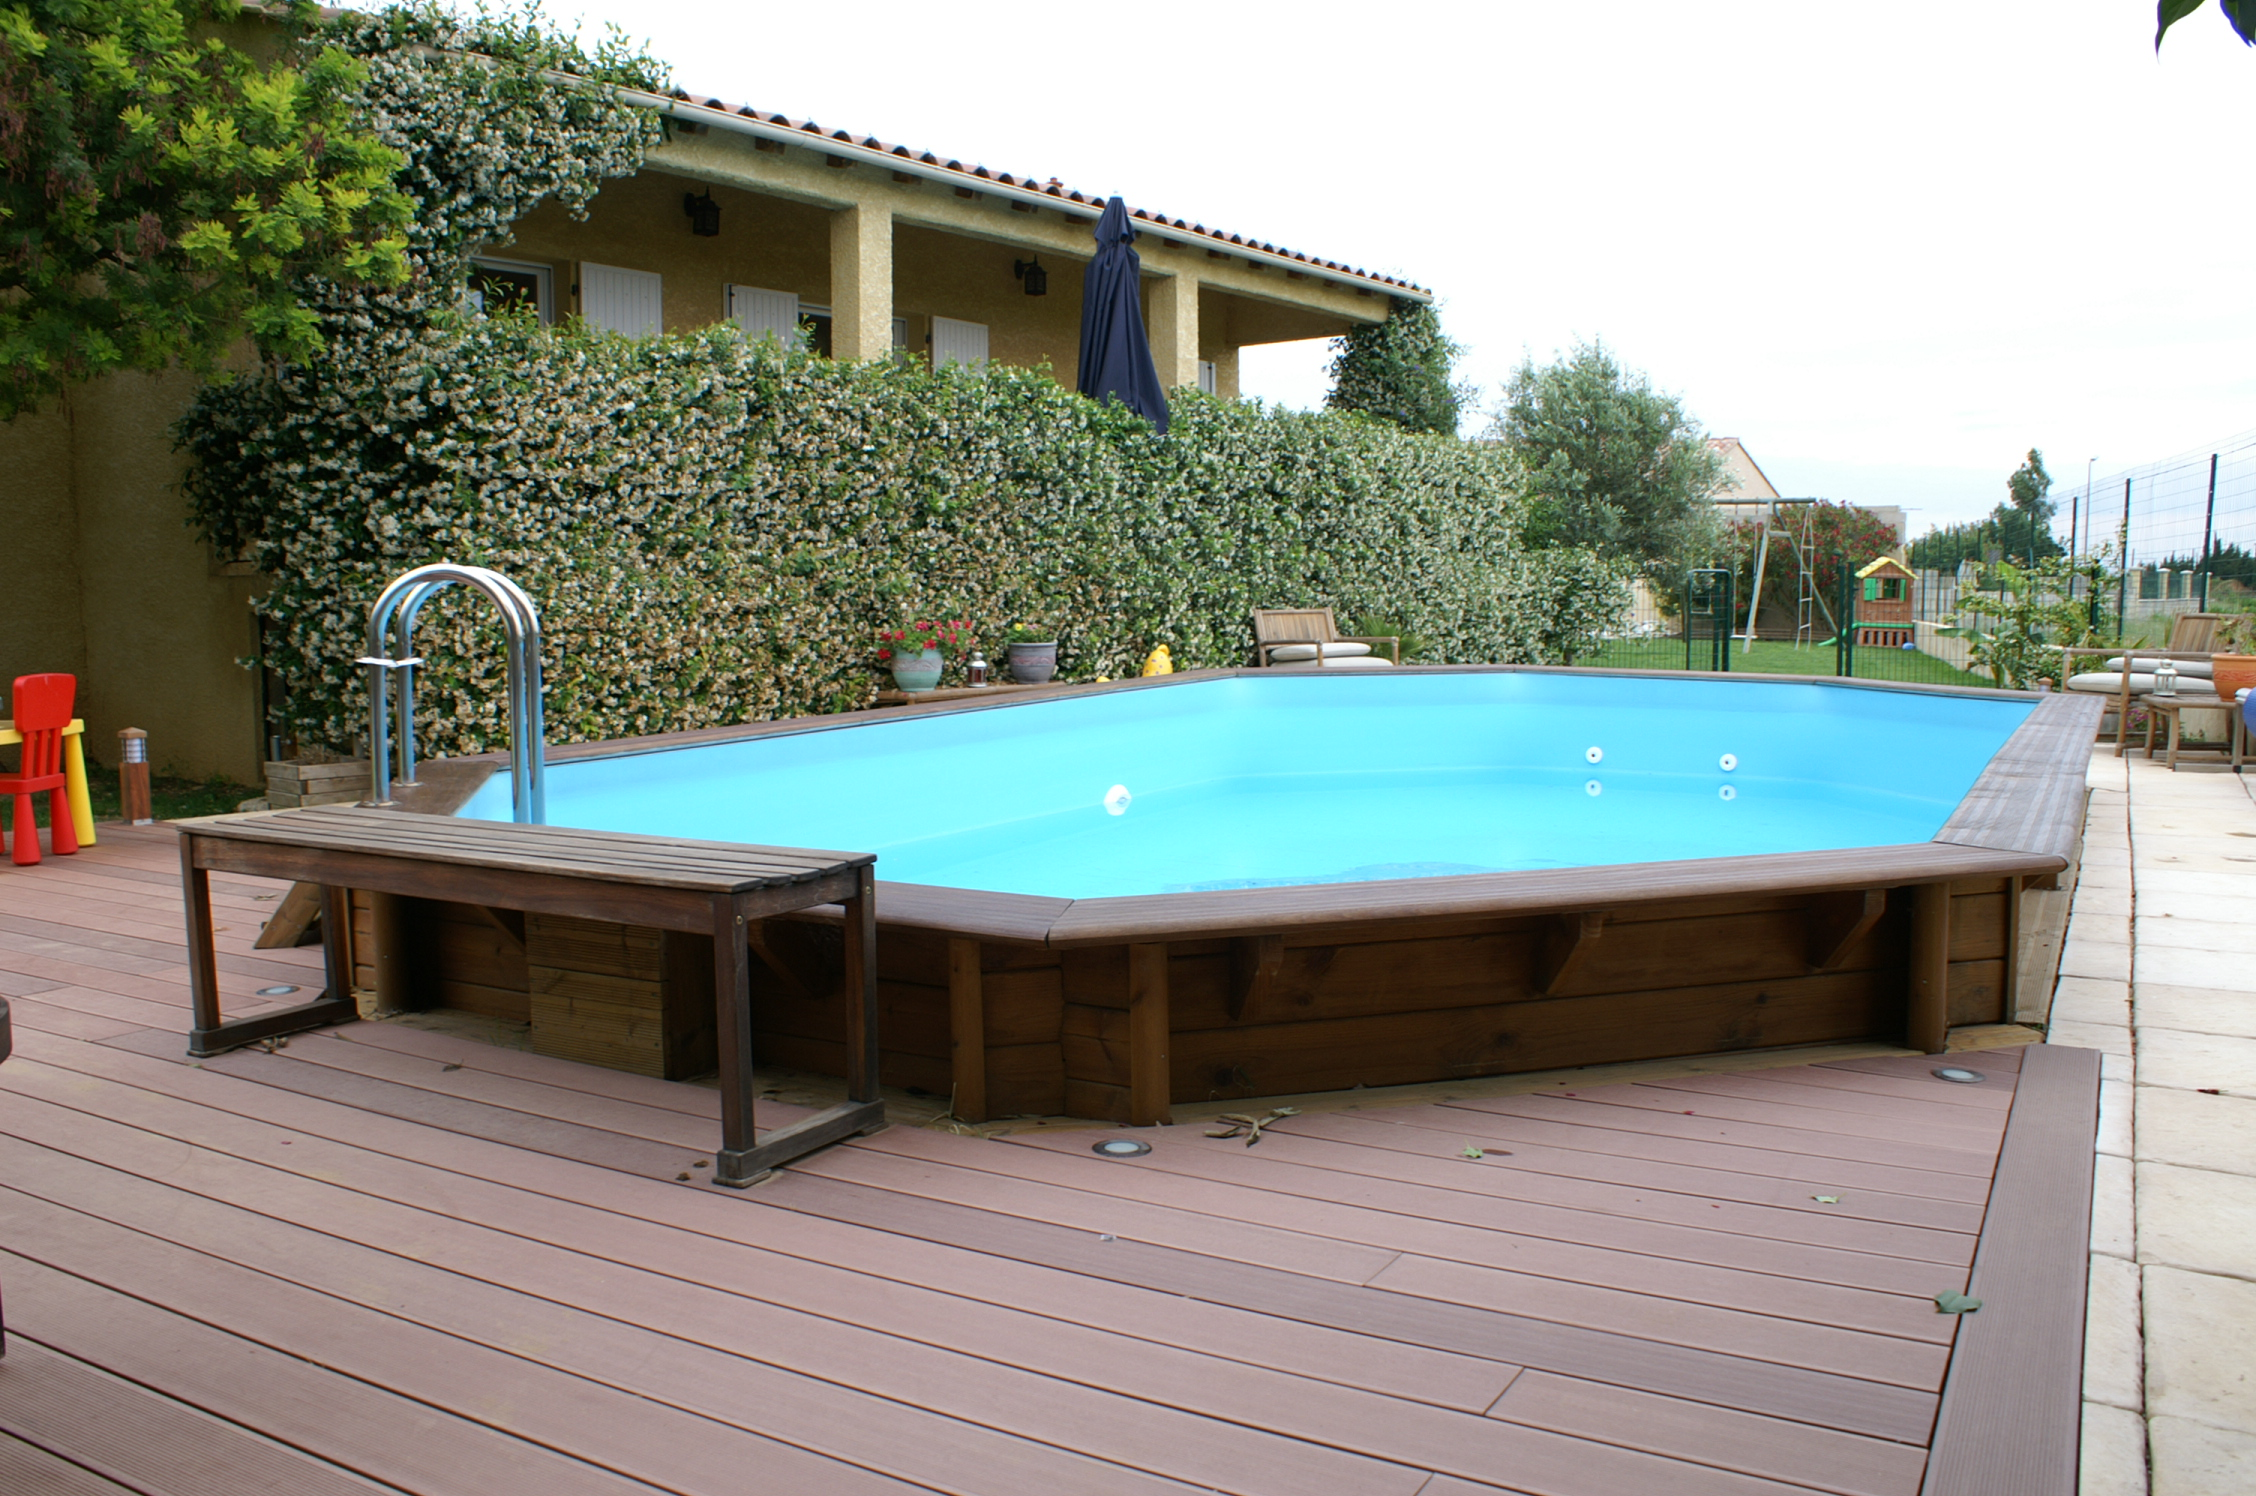 Construction piscines nimes gepad piscines et spa 30000 for Rechauffeur de piscine hors sol